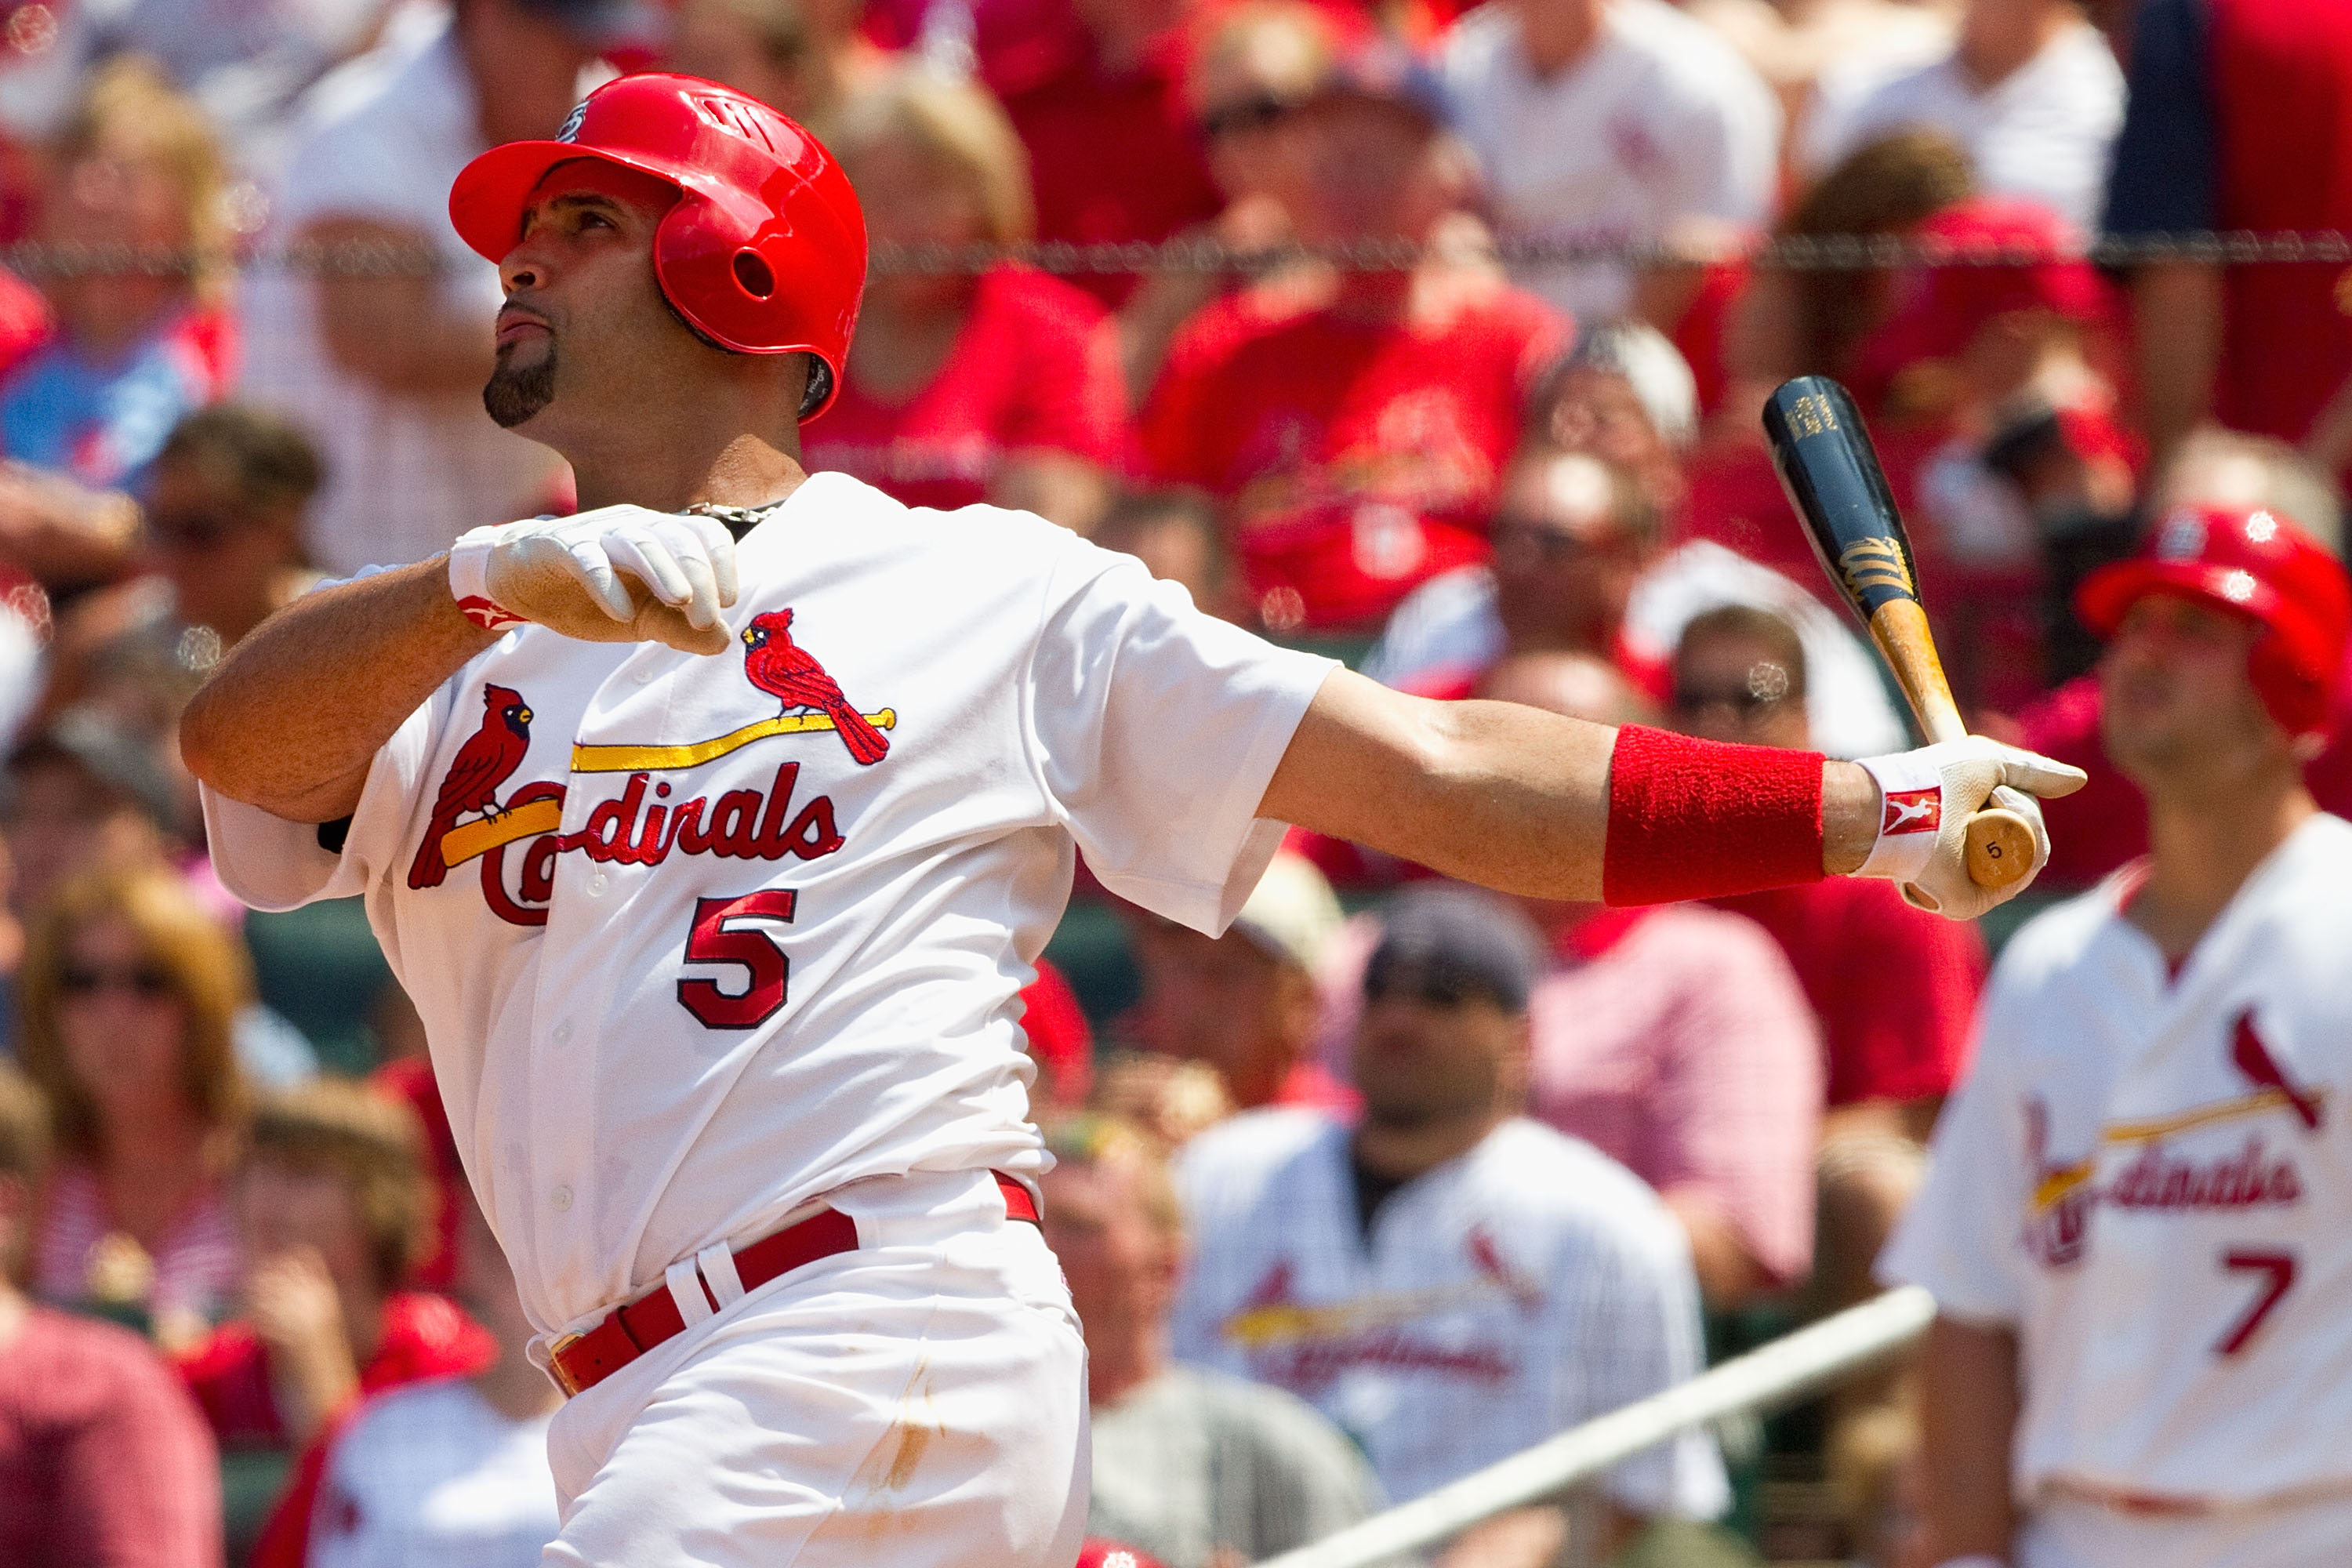 ST. LOUIS - AUGUST 1: Albert Pujols #5 of the St. Louis Cardinals hits a two-run home run against the Pittsburgh Pirates at Busch Stadium on August 1, 2010 in St. Louis, Missouri.  The Cardinals beat the Pirates 9-1.  (Photo by Dilip Vishwanat/Getty Image